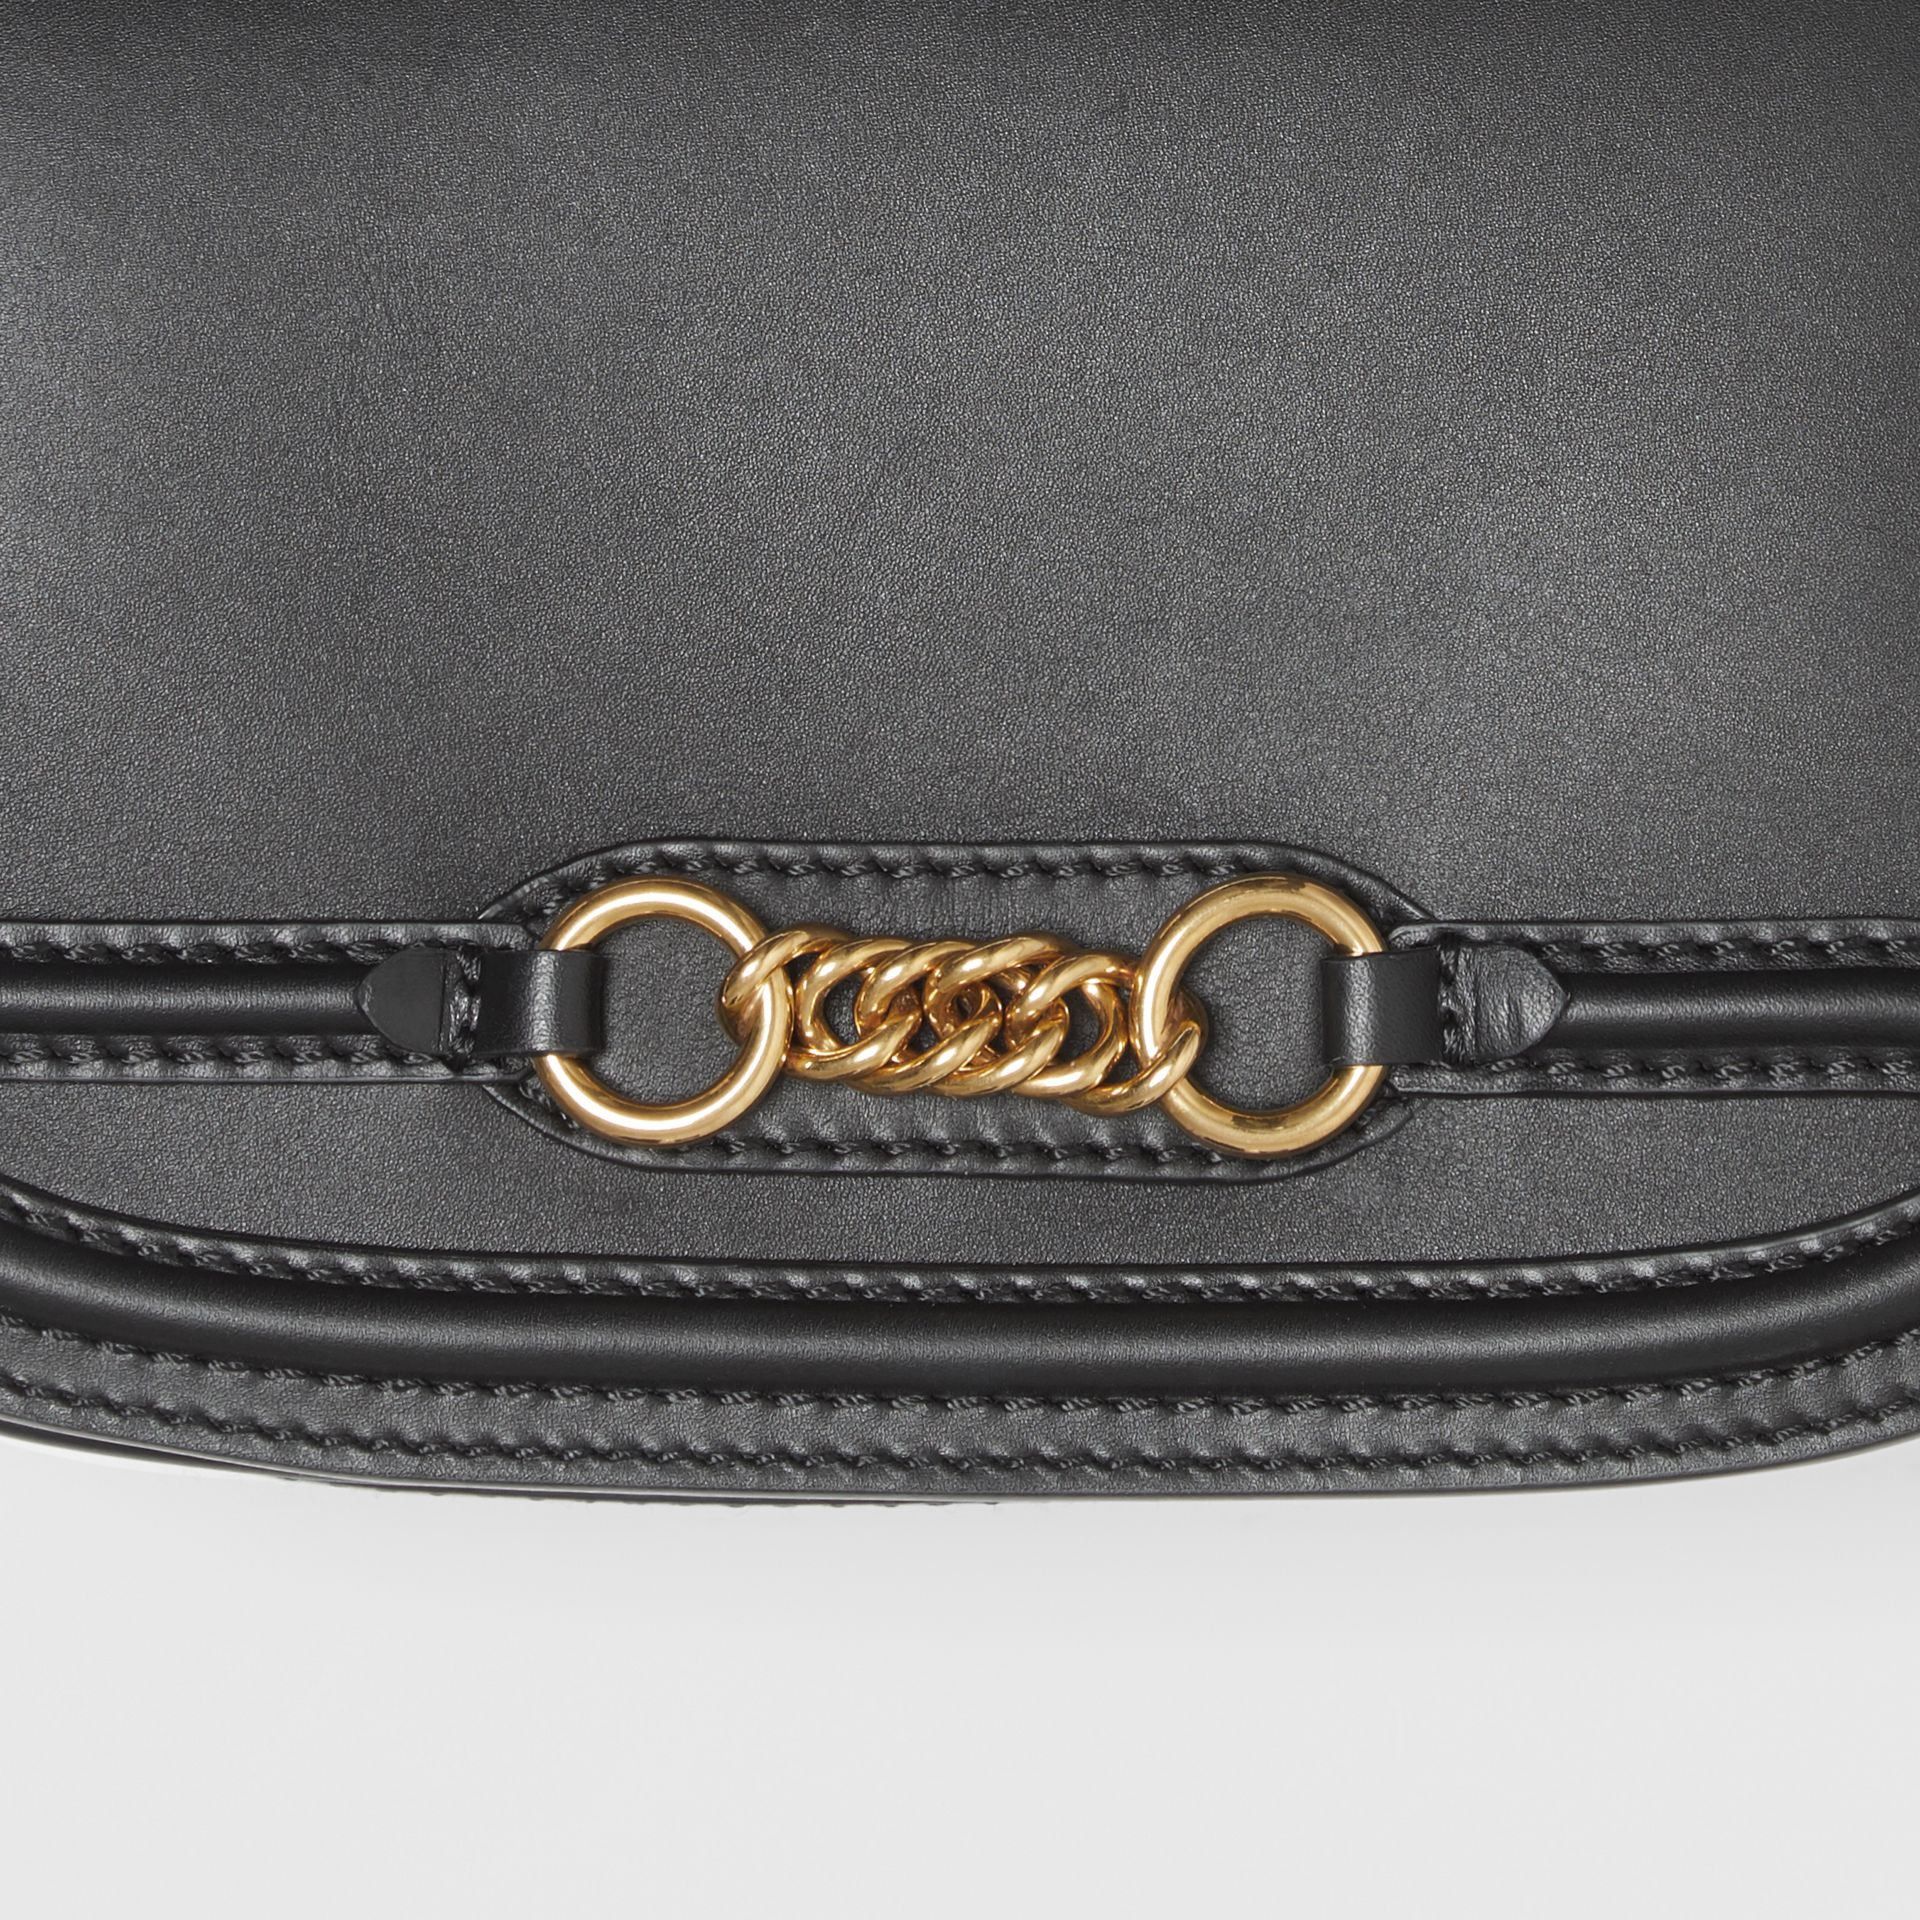 Sac The Link en cuir (Noir) - Femme | Burberry - photo de la galerie 1